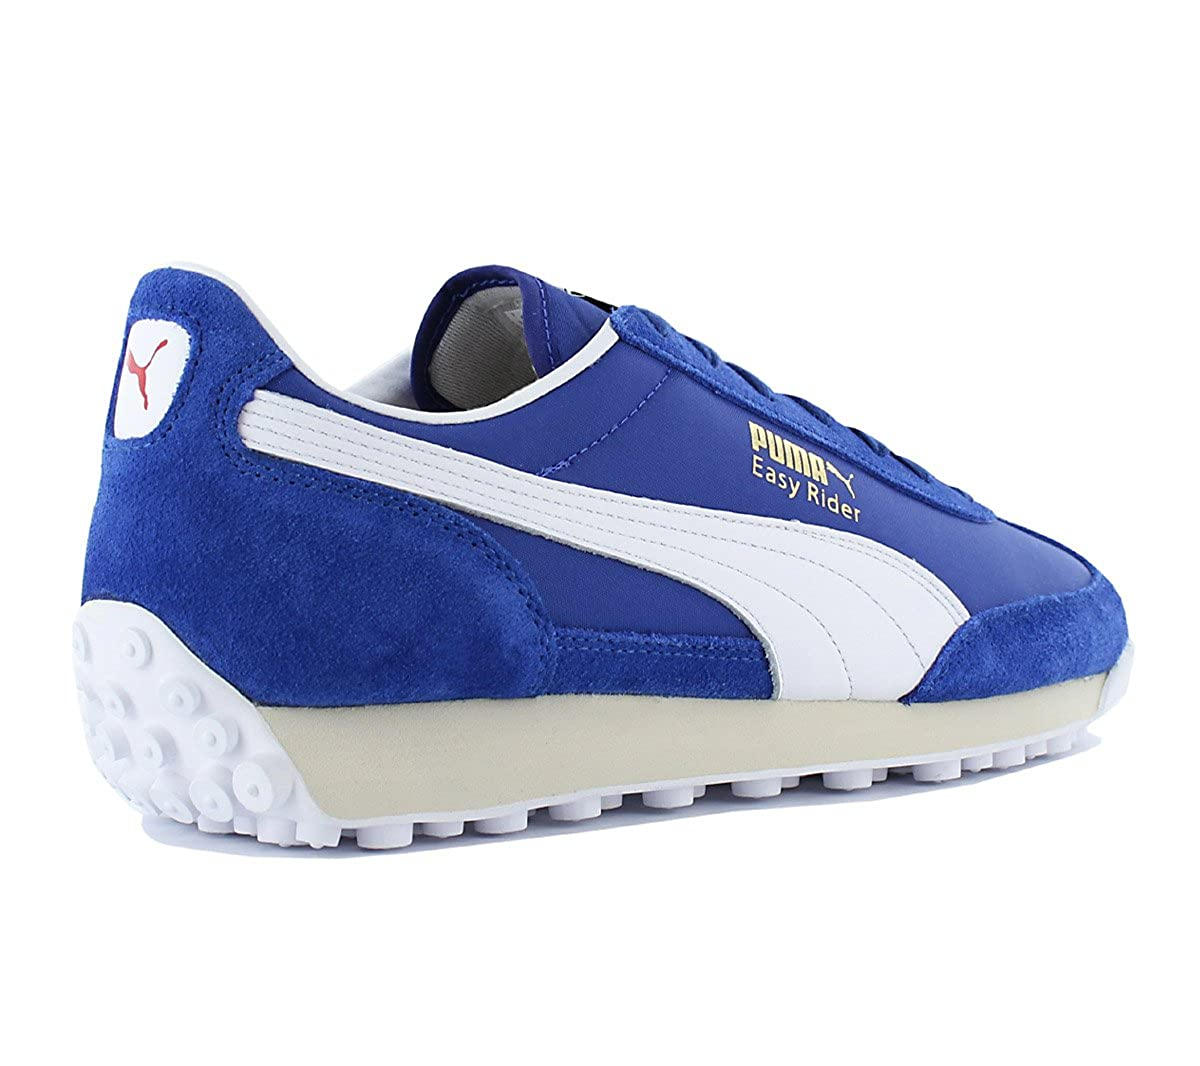 a01377299bd4 Puma Easy Rider VTG Footwear Blue Mens Trainers Sneaker Shoes   Amazon.co.uk  Shoes   Bags